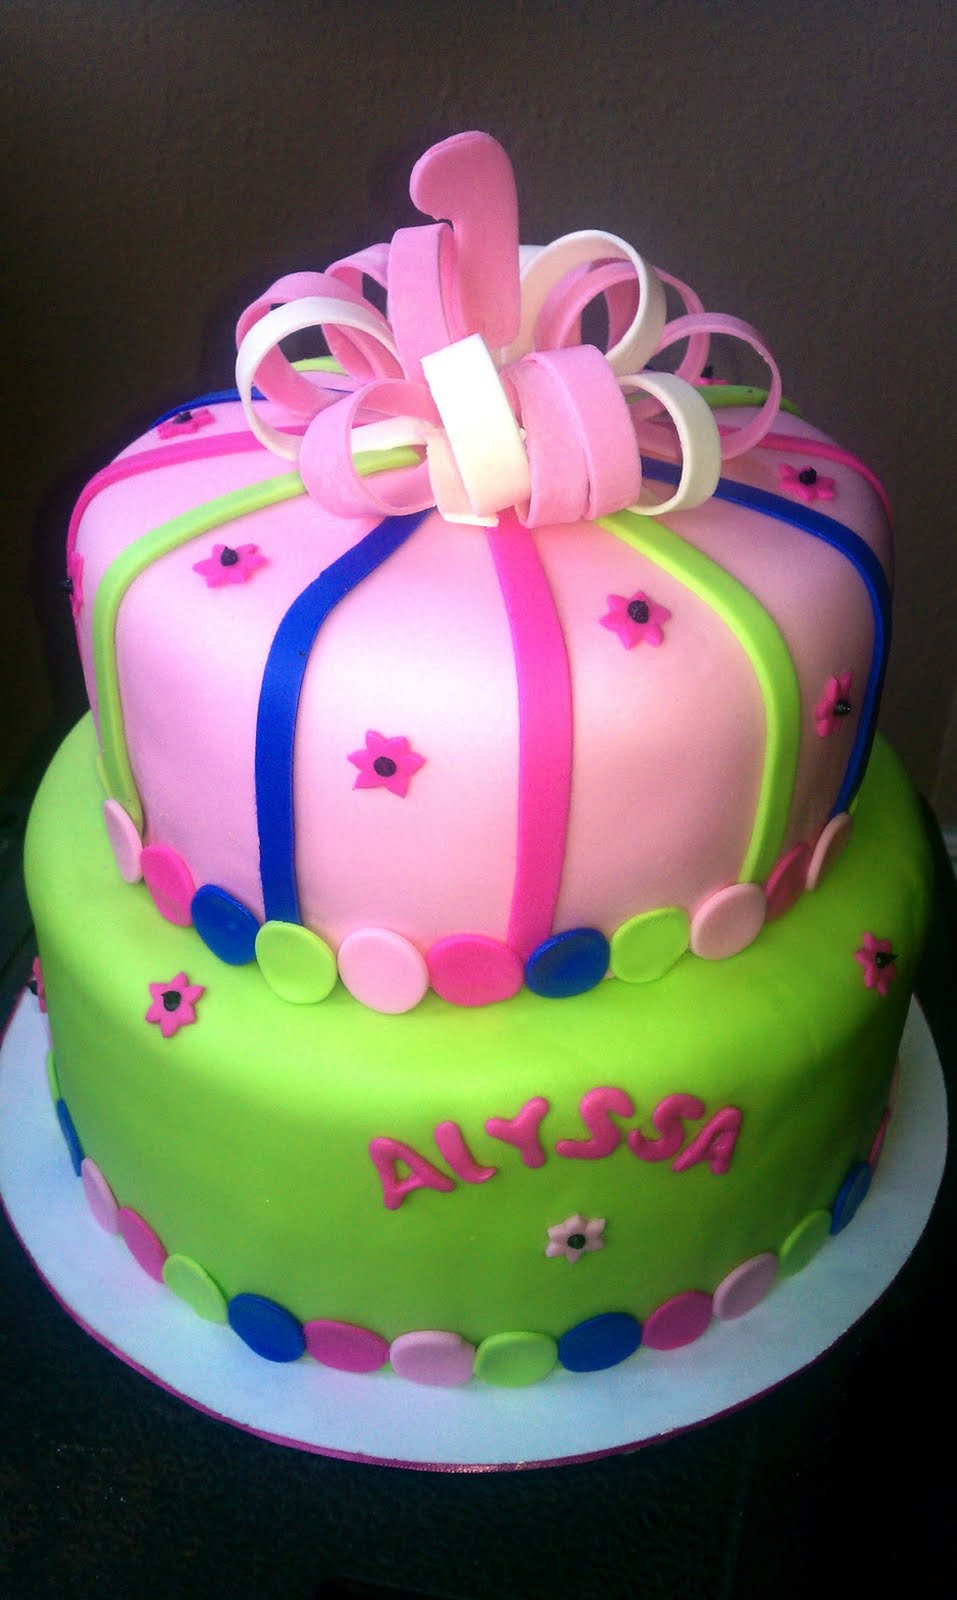 Luz The Cake Lady Pretty Cake For Alyssas 1st Birthday